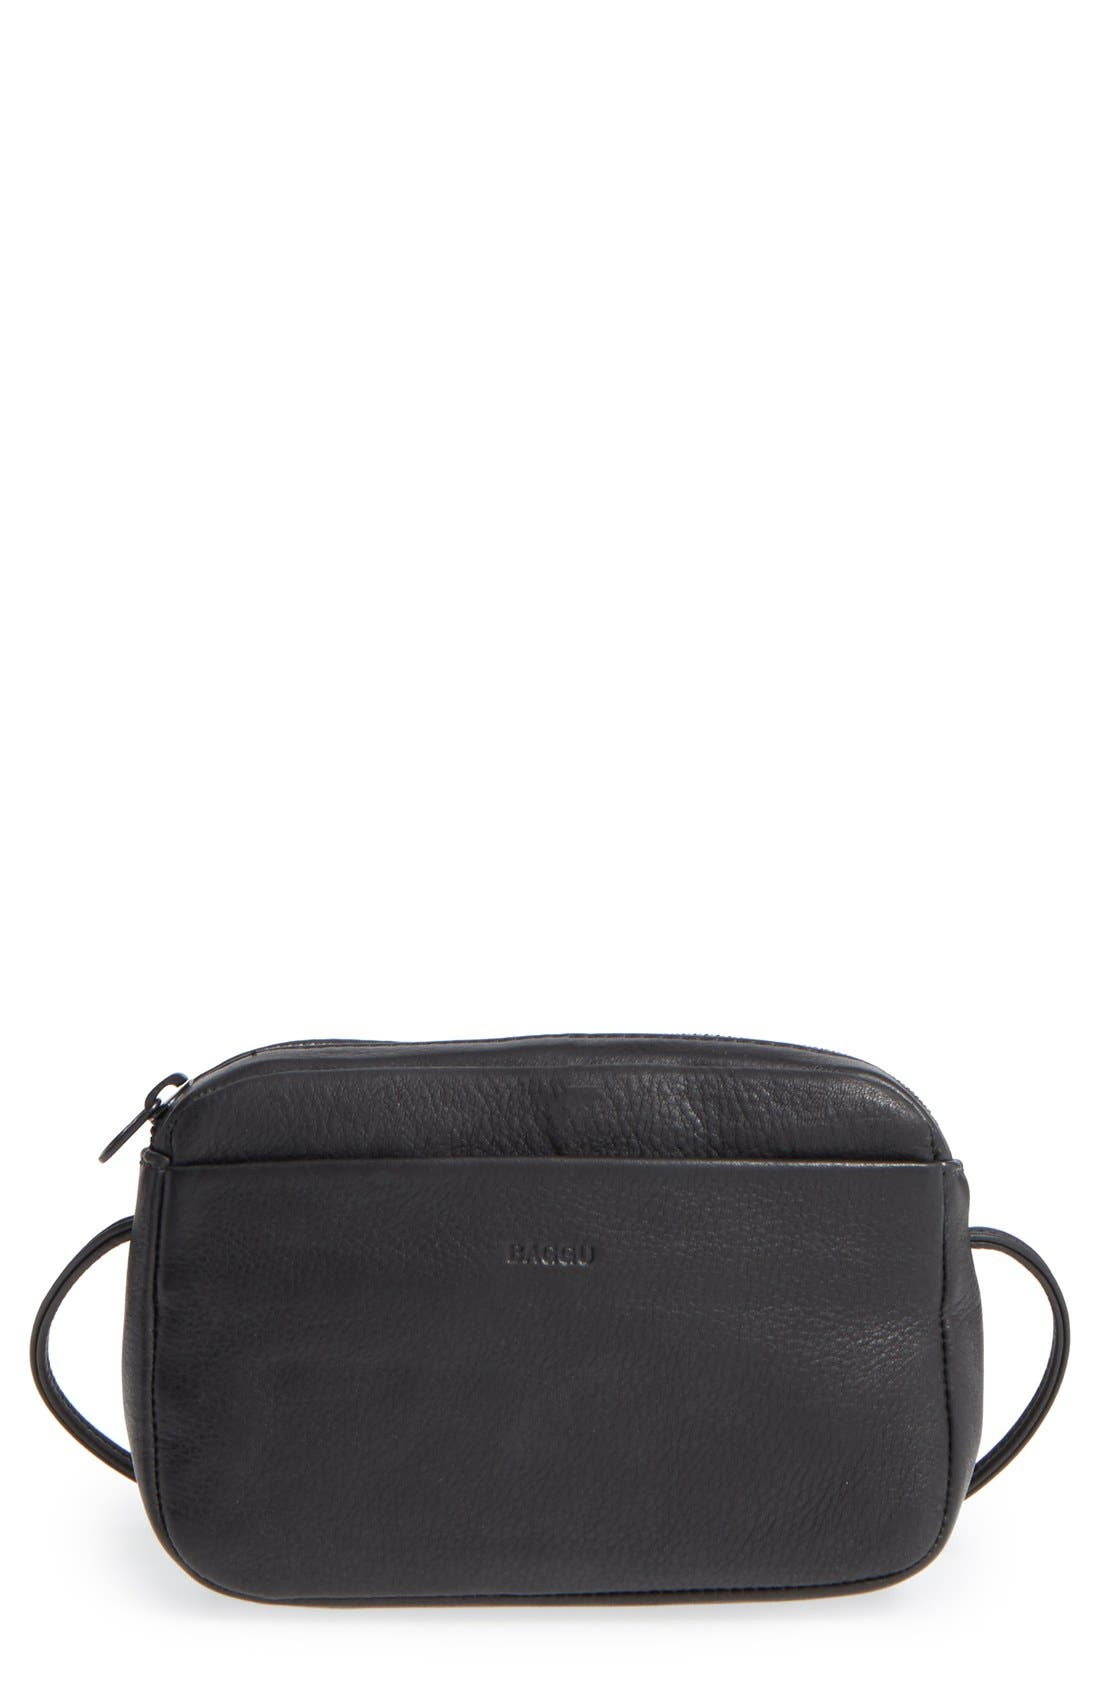 Baggu 'Mini' Pebbled Leather Crossbody